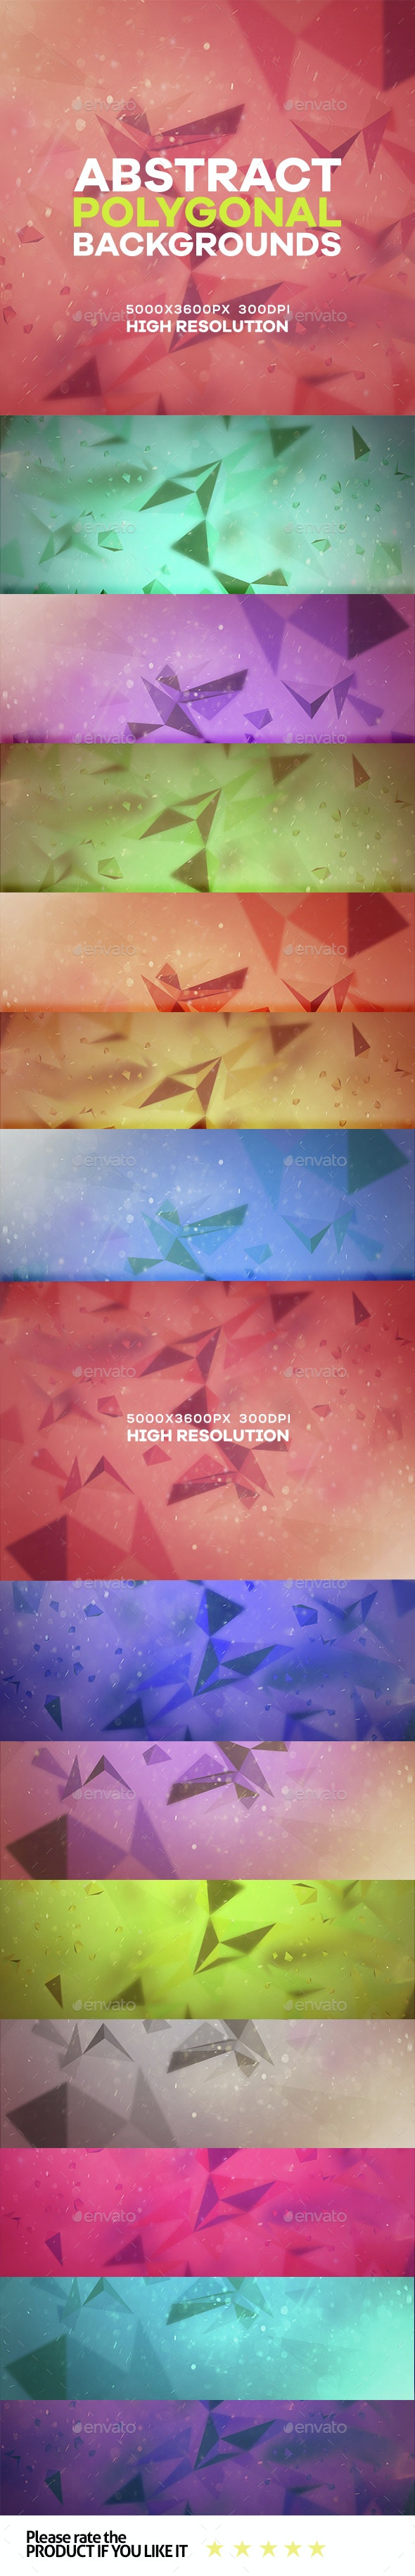 Abstract Polygonal Dust background - Abstract Backgrounds